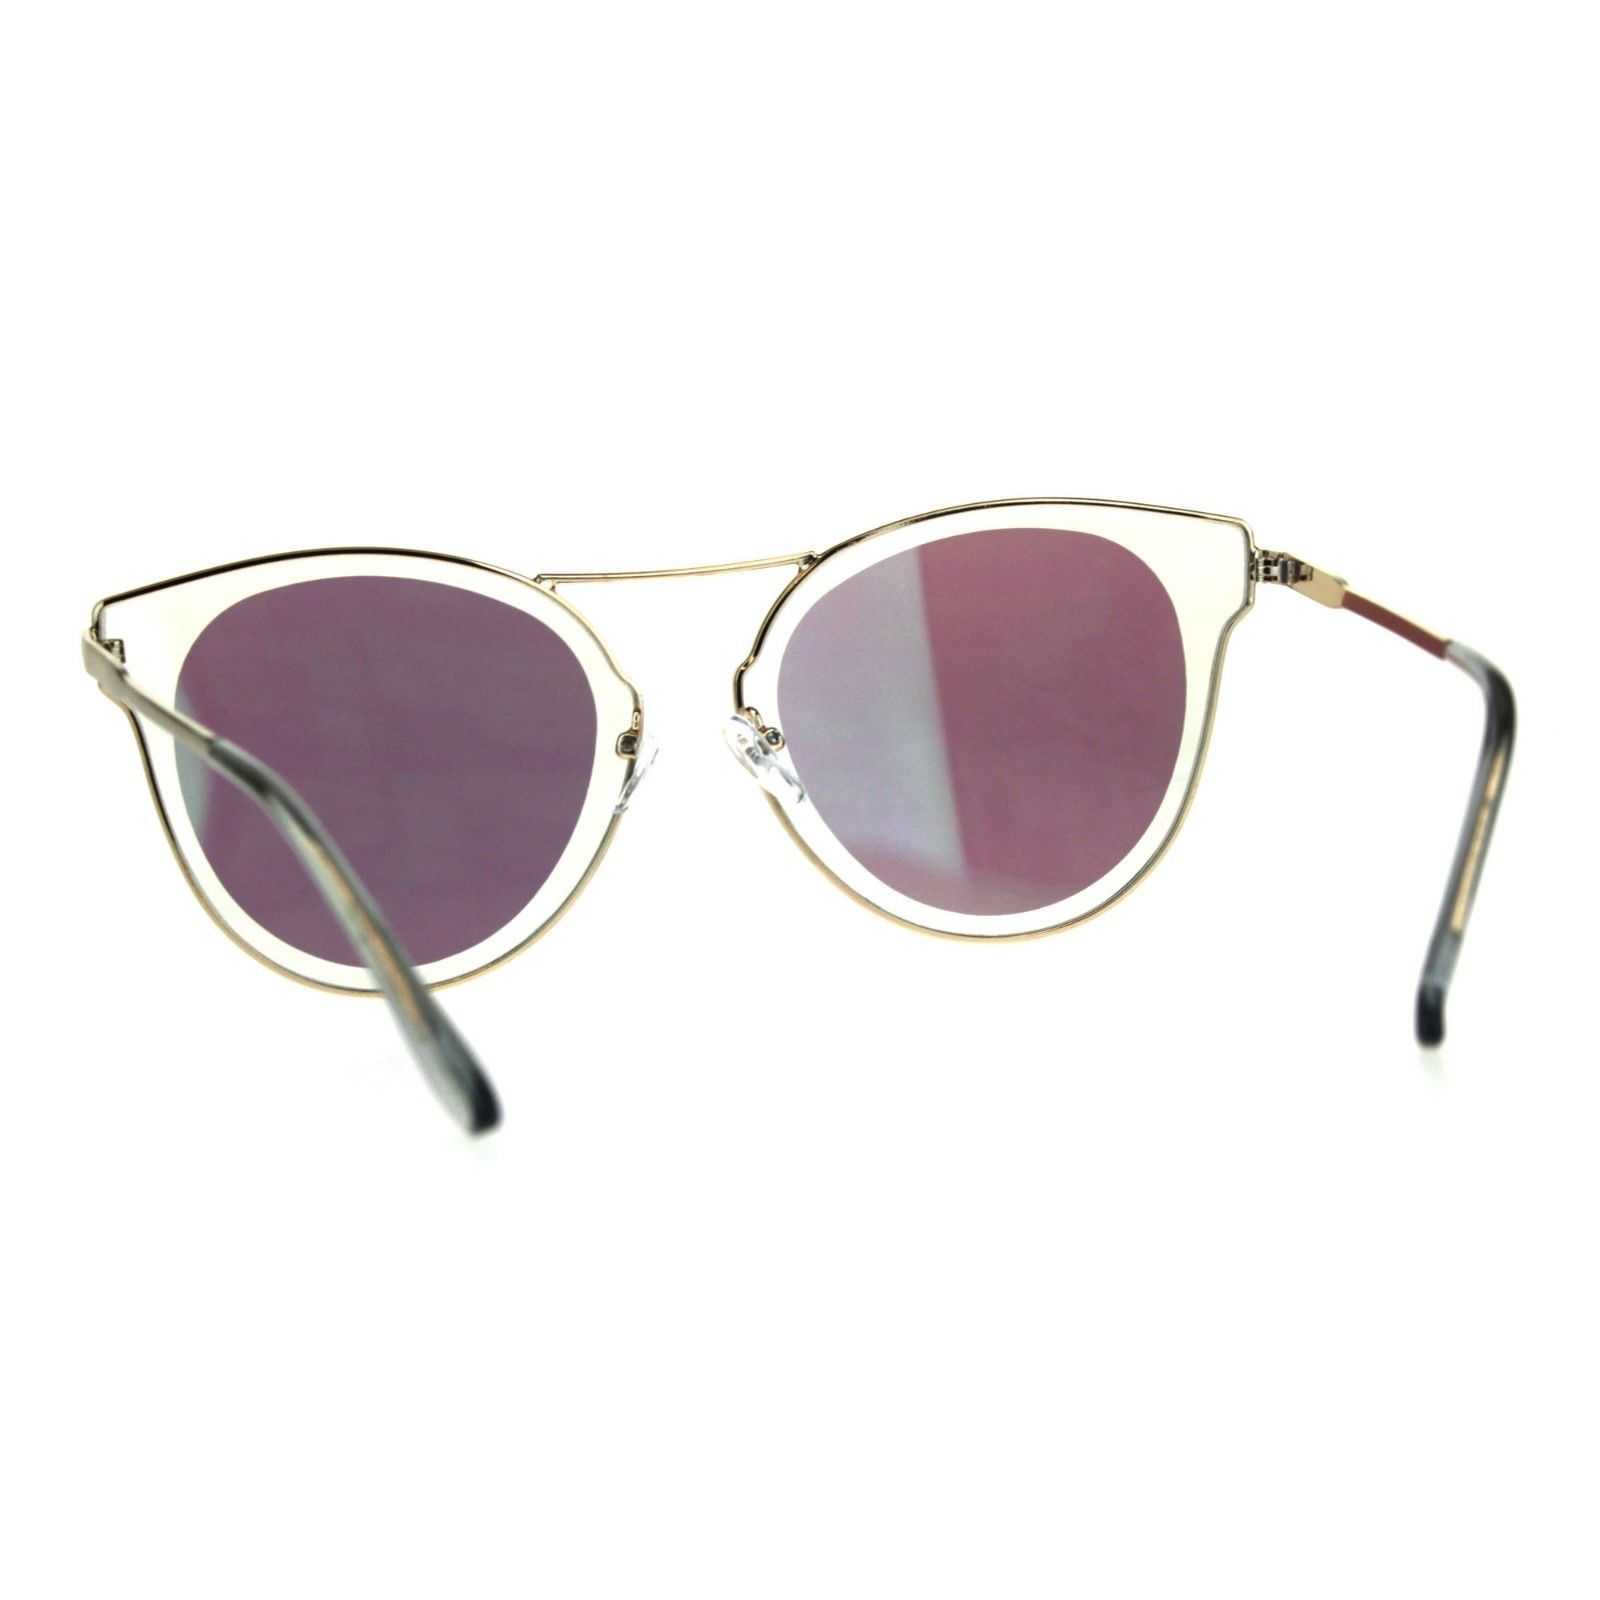 Womens Fashion Sunglasses Gold Metal Butterfly Frame Mirror Lens